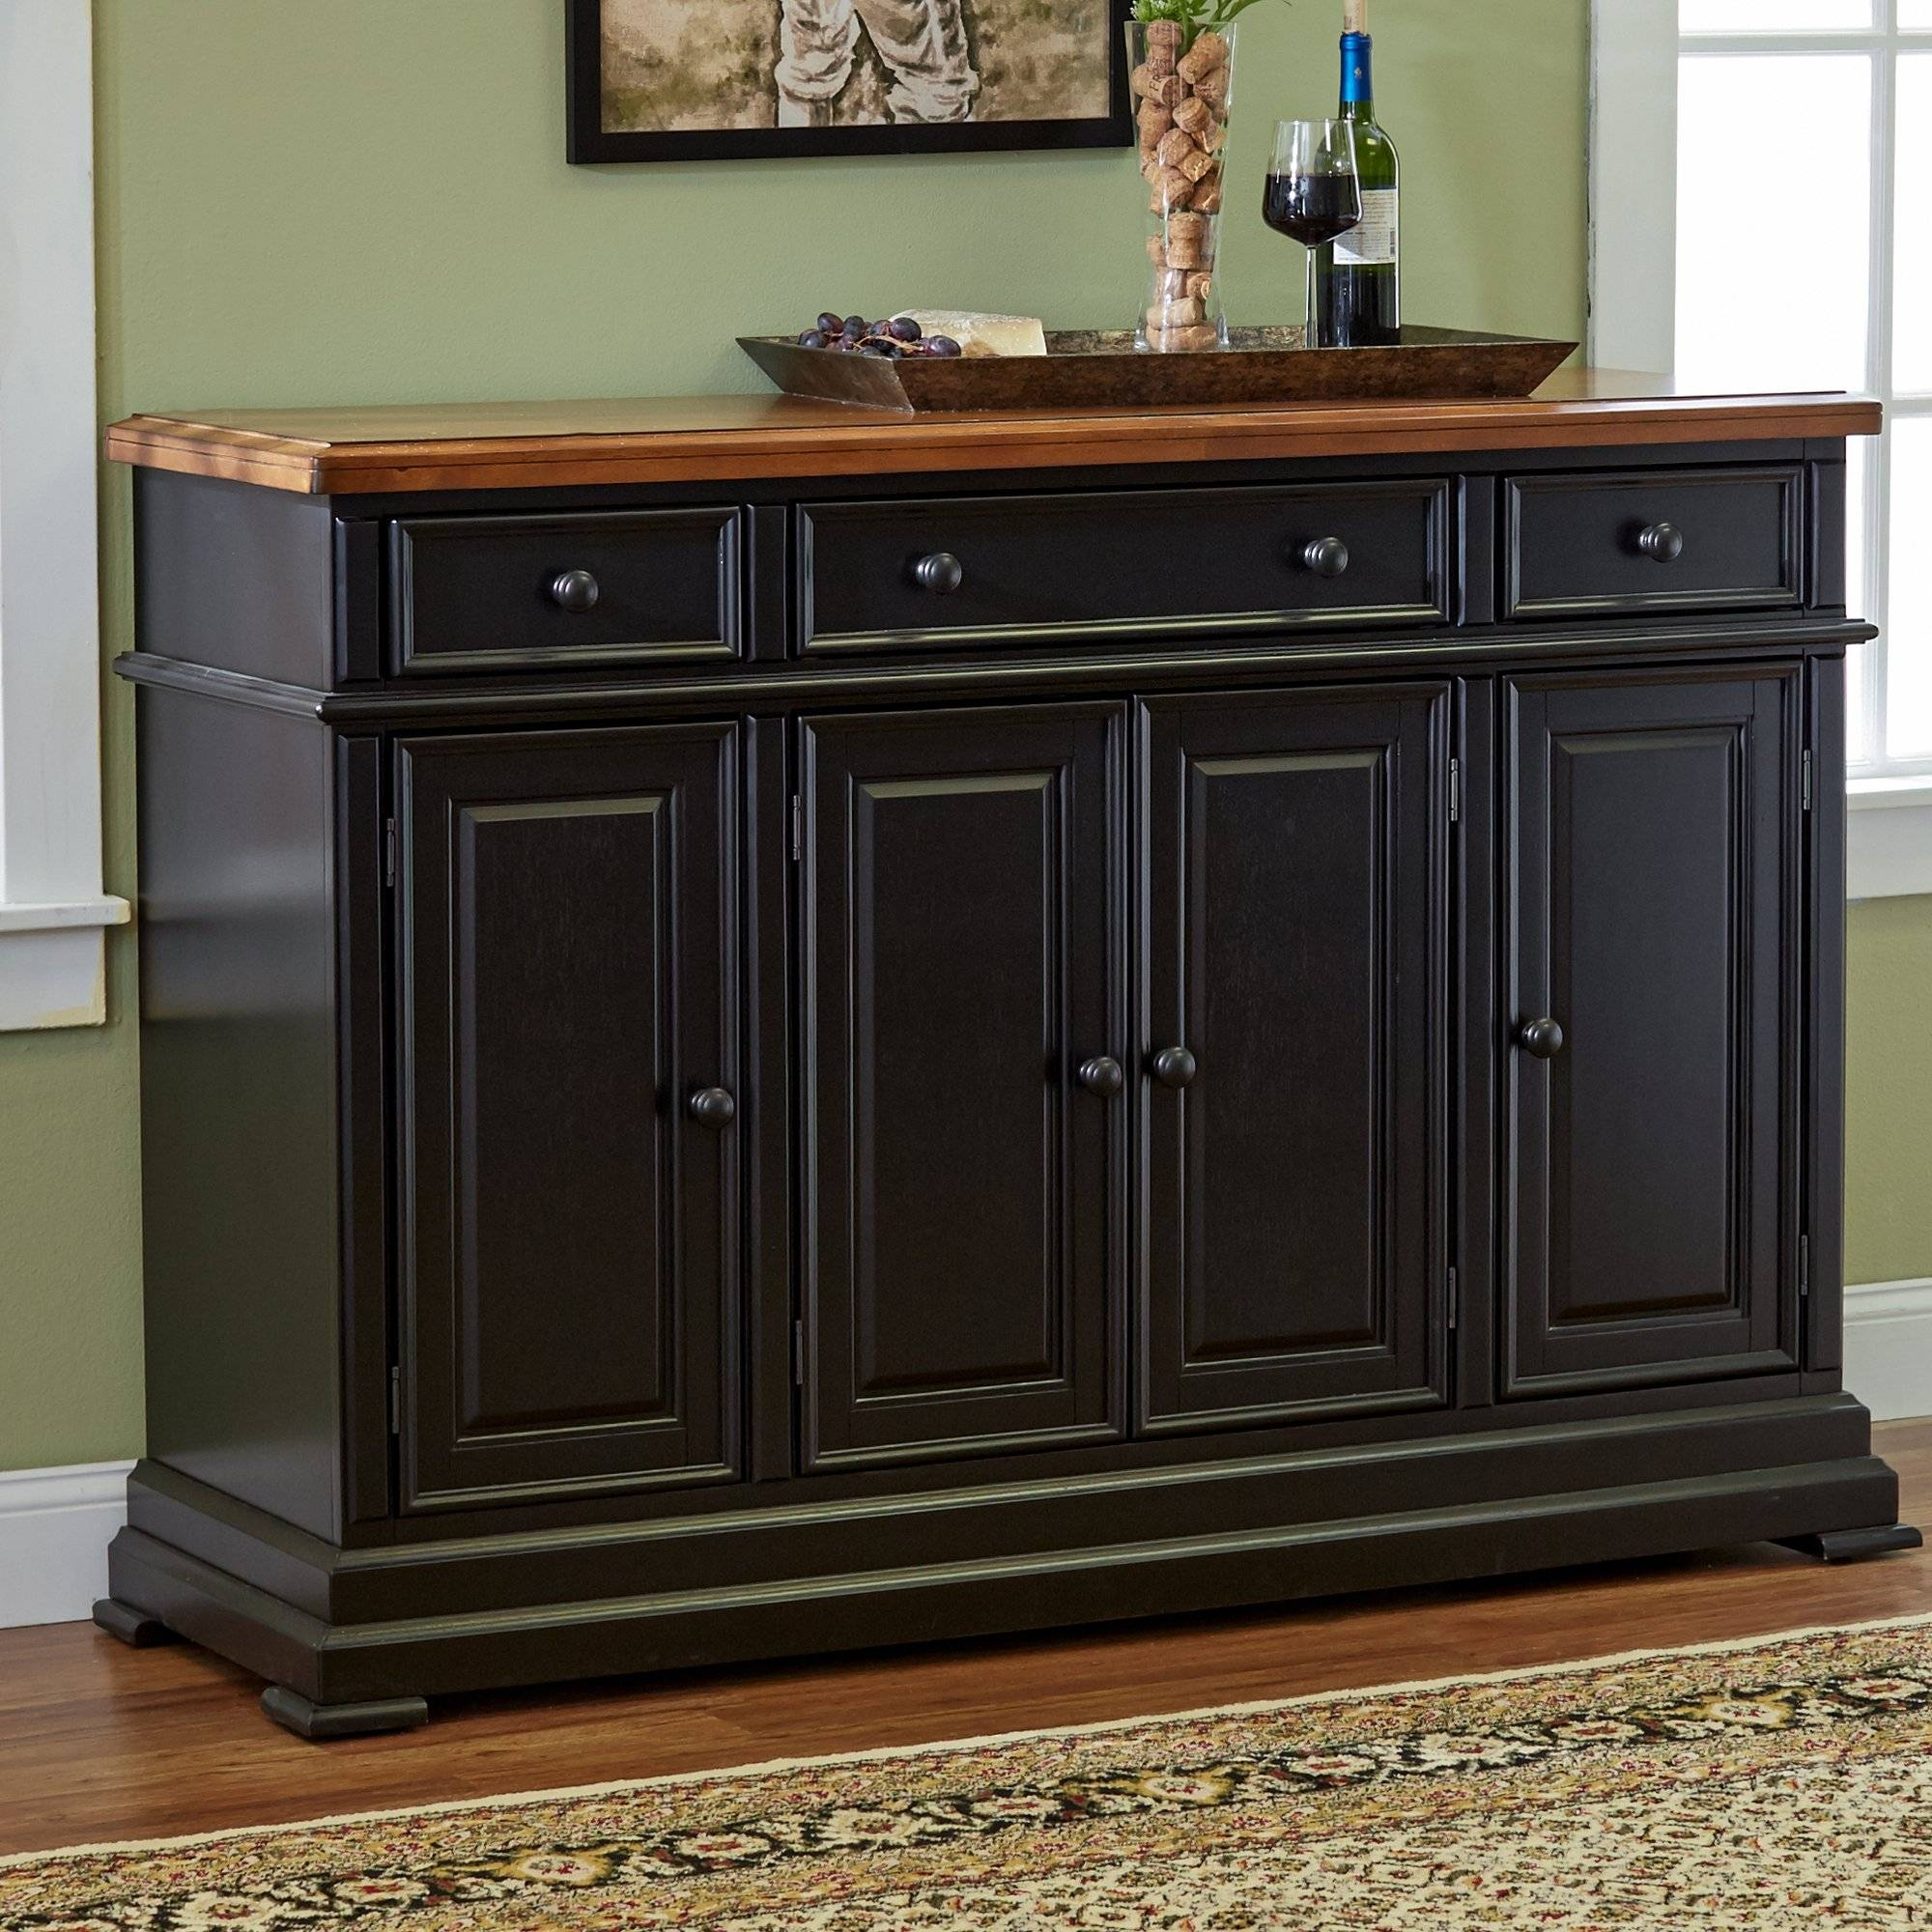 Luxury Rustic Sideboard Buffet – Bjdgjy Within Newest Rustic Sideboards And Buffets (View 13 of 15)